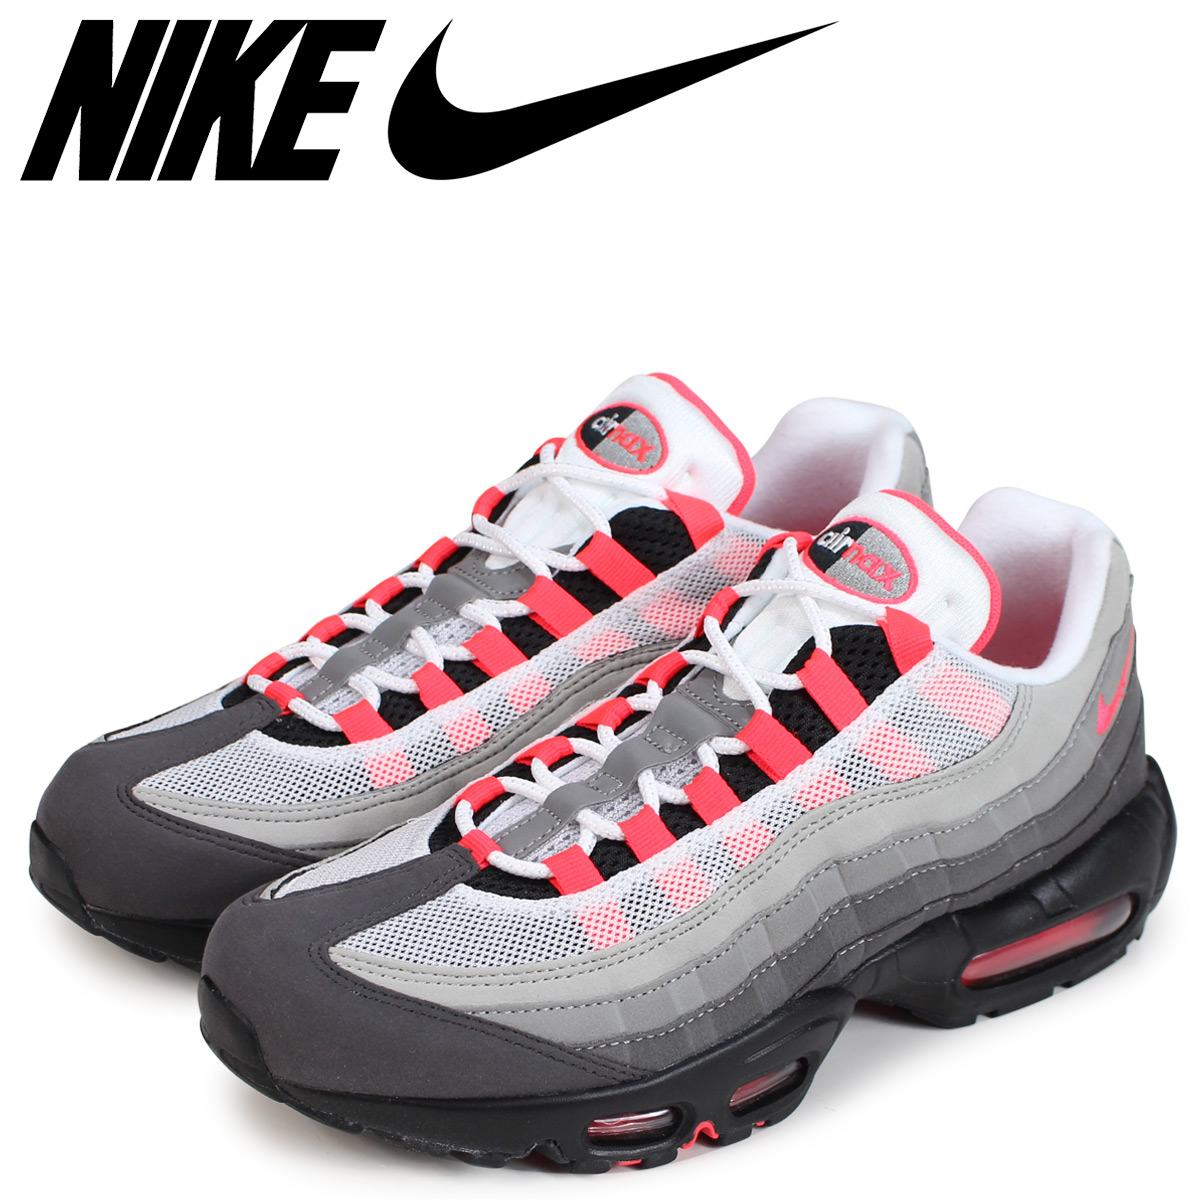 quality design 711fc e31b2  brand NIKE getting high popularity from sneakers freak